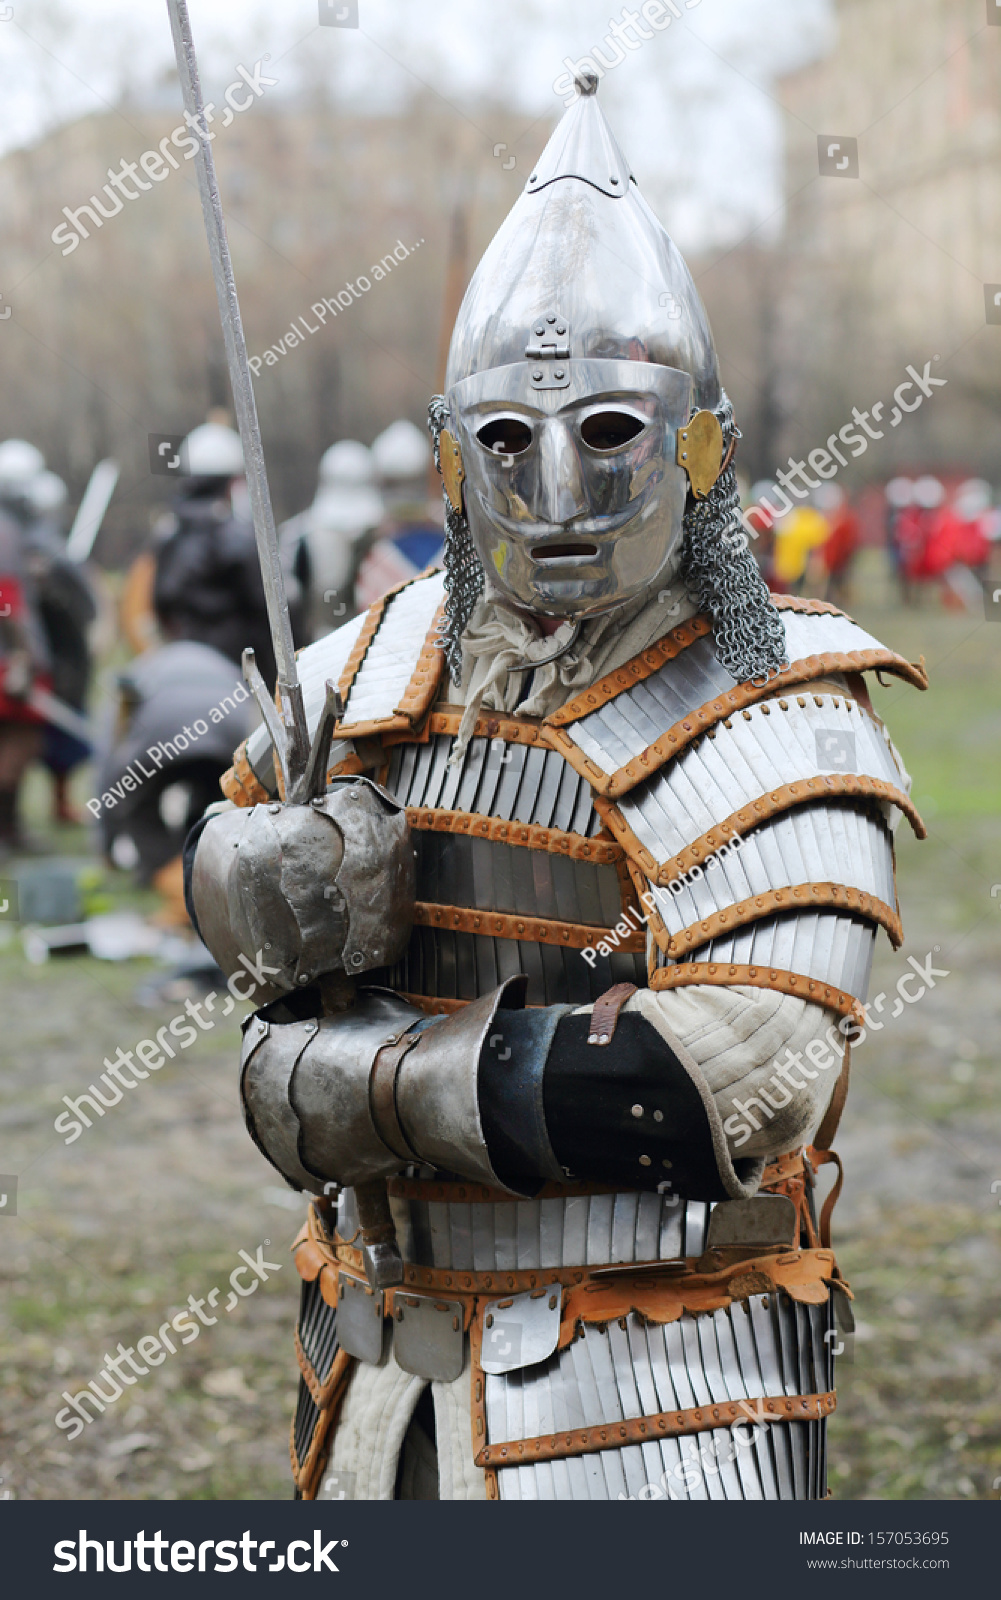 stock-photo-moscow-apr-warrior-in-armor-with-sword-at-battle-of-east-russia-orda-xi-xv-centuries-on-157053695